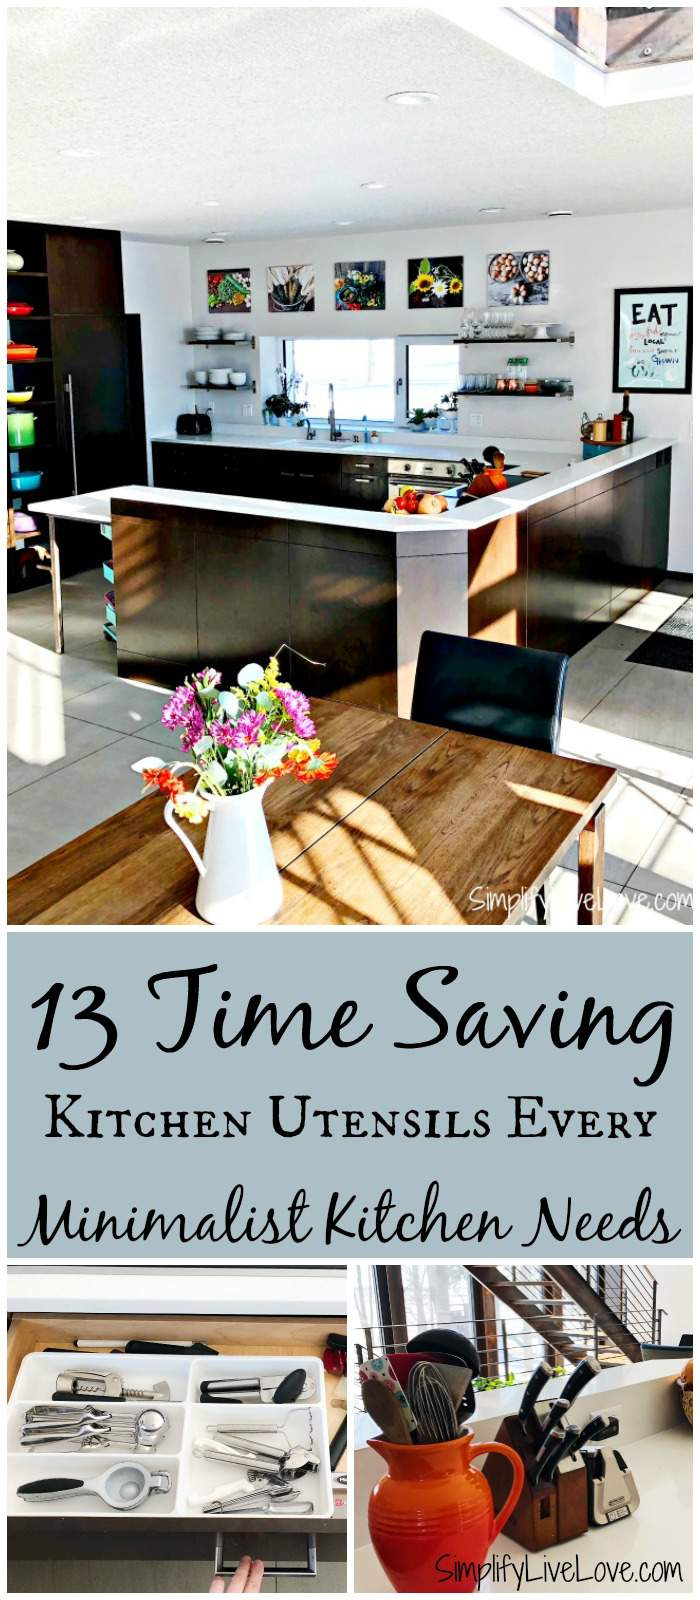 A minimalist kitchen can help you save money and time, not just on cooking, but also on cleaning because you just have fewer things! Here are the time saving kitchen gadgets that are must haves for quick, healthy, from scratch cooking in my minimalist kitchen.